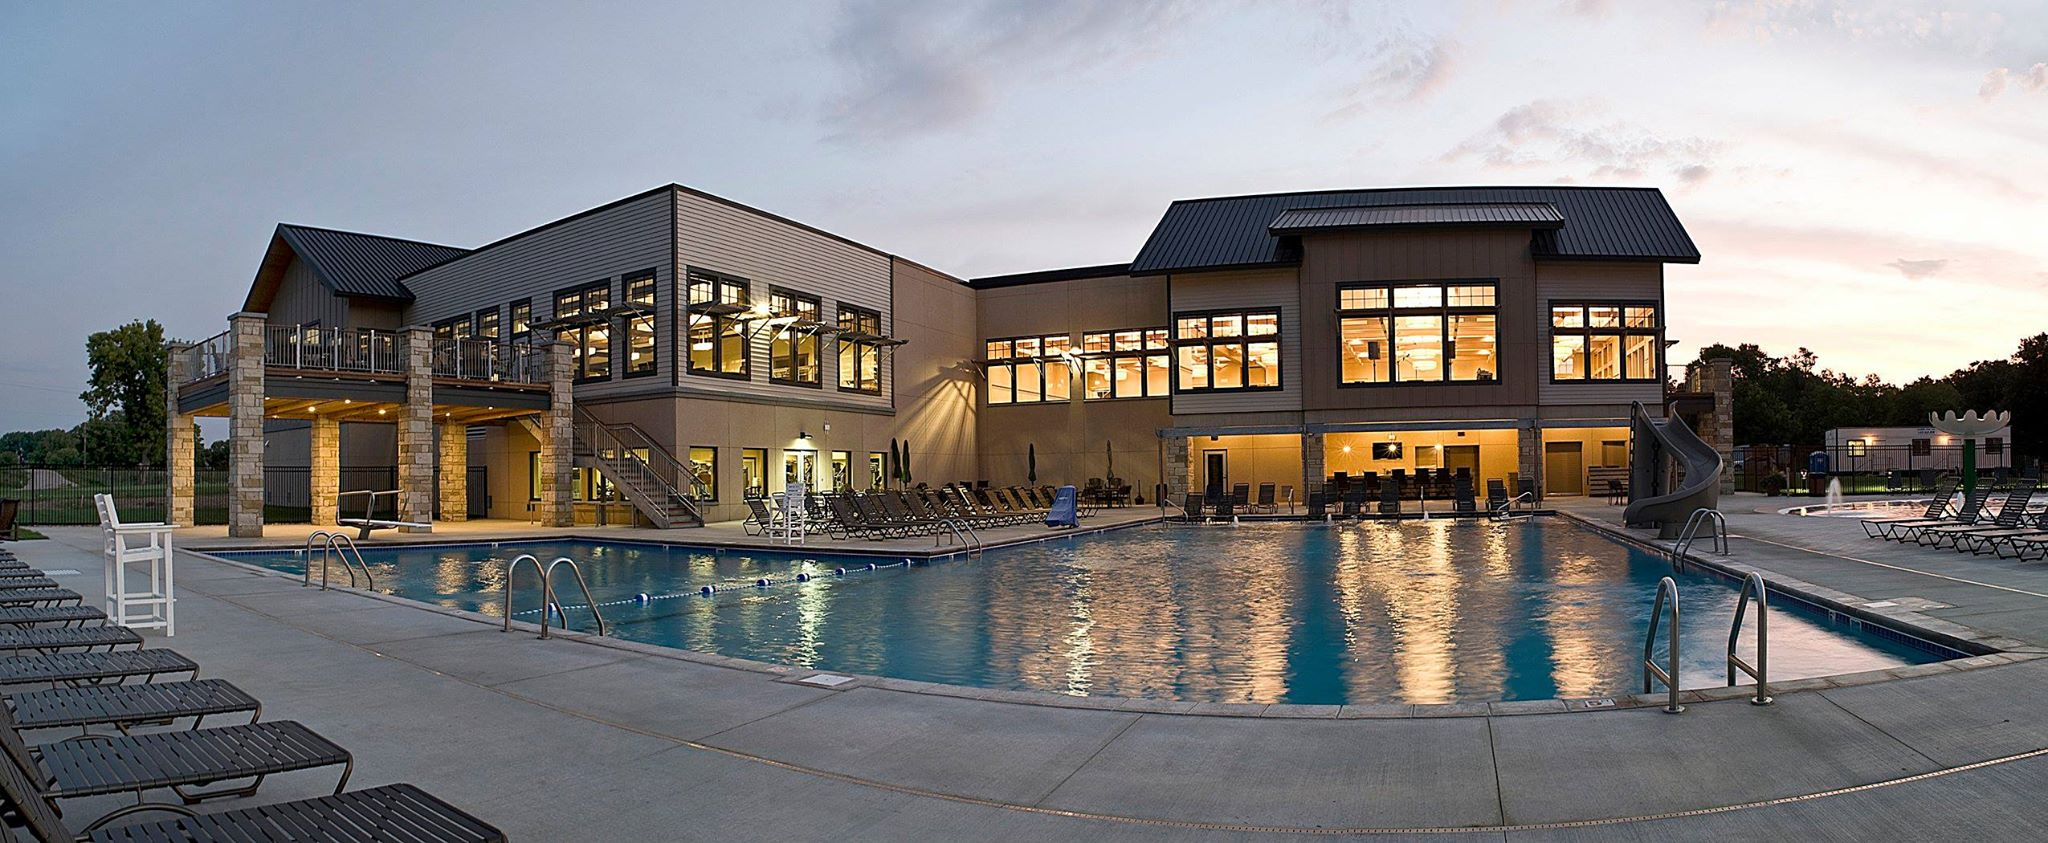 The Country Club of Sioux Falls pool and wellness center South Dakota